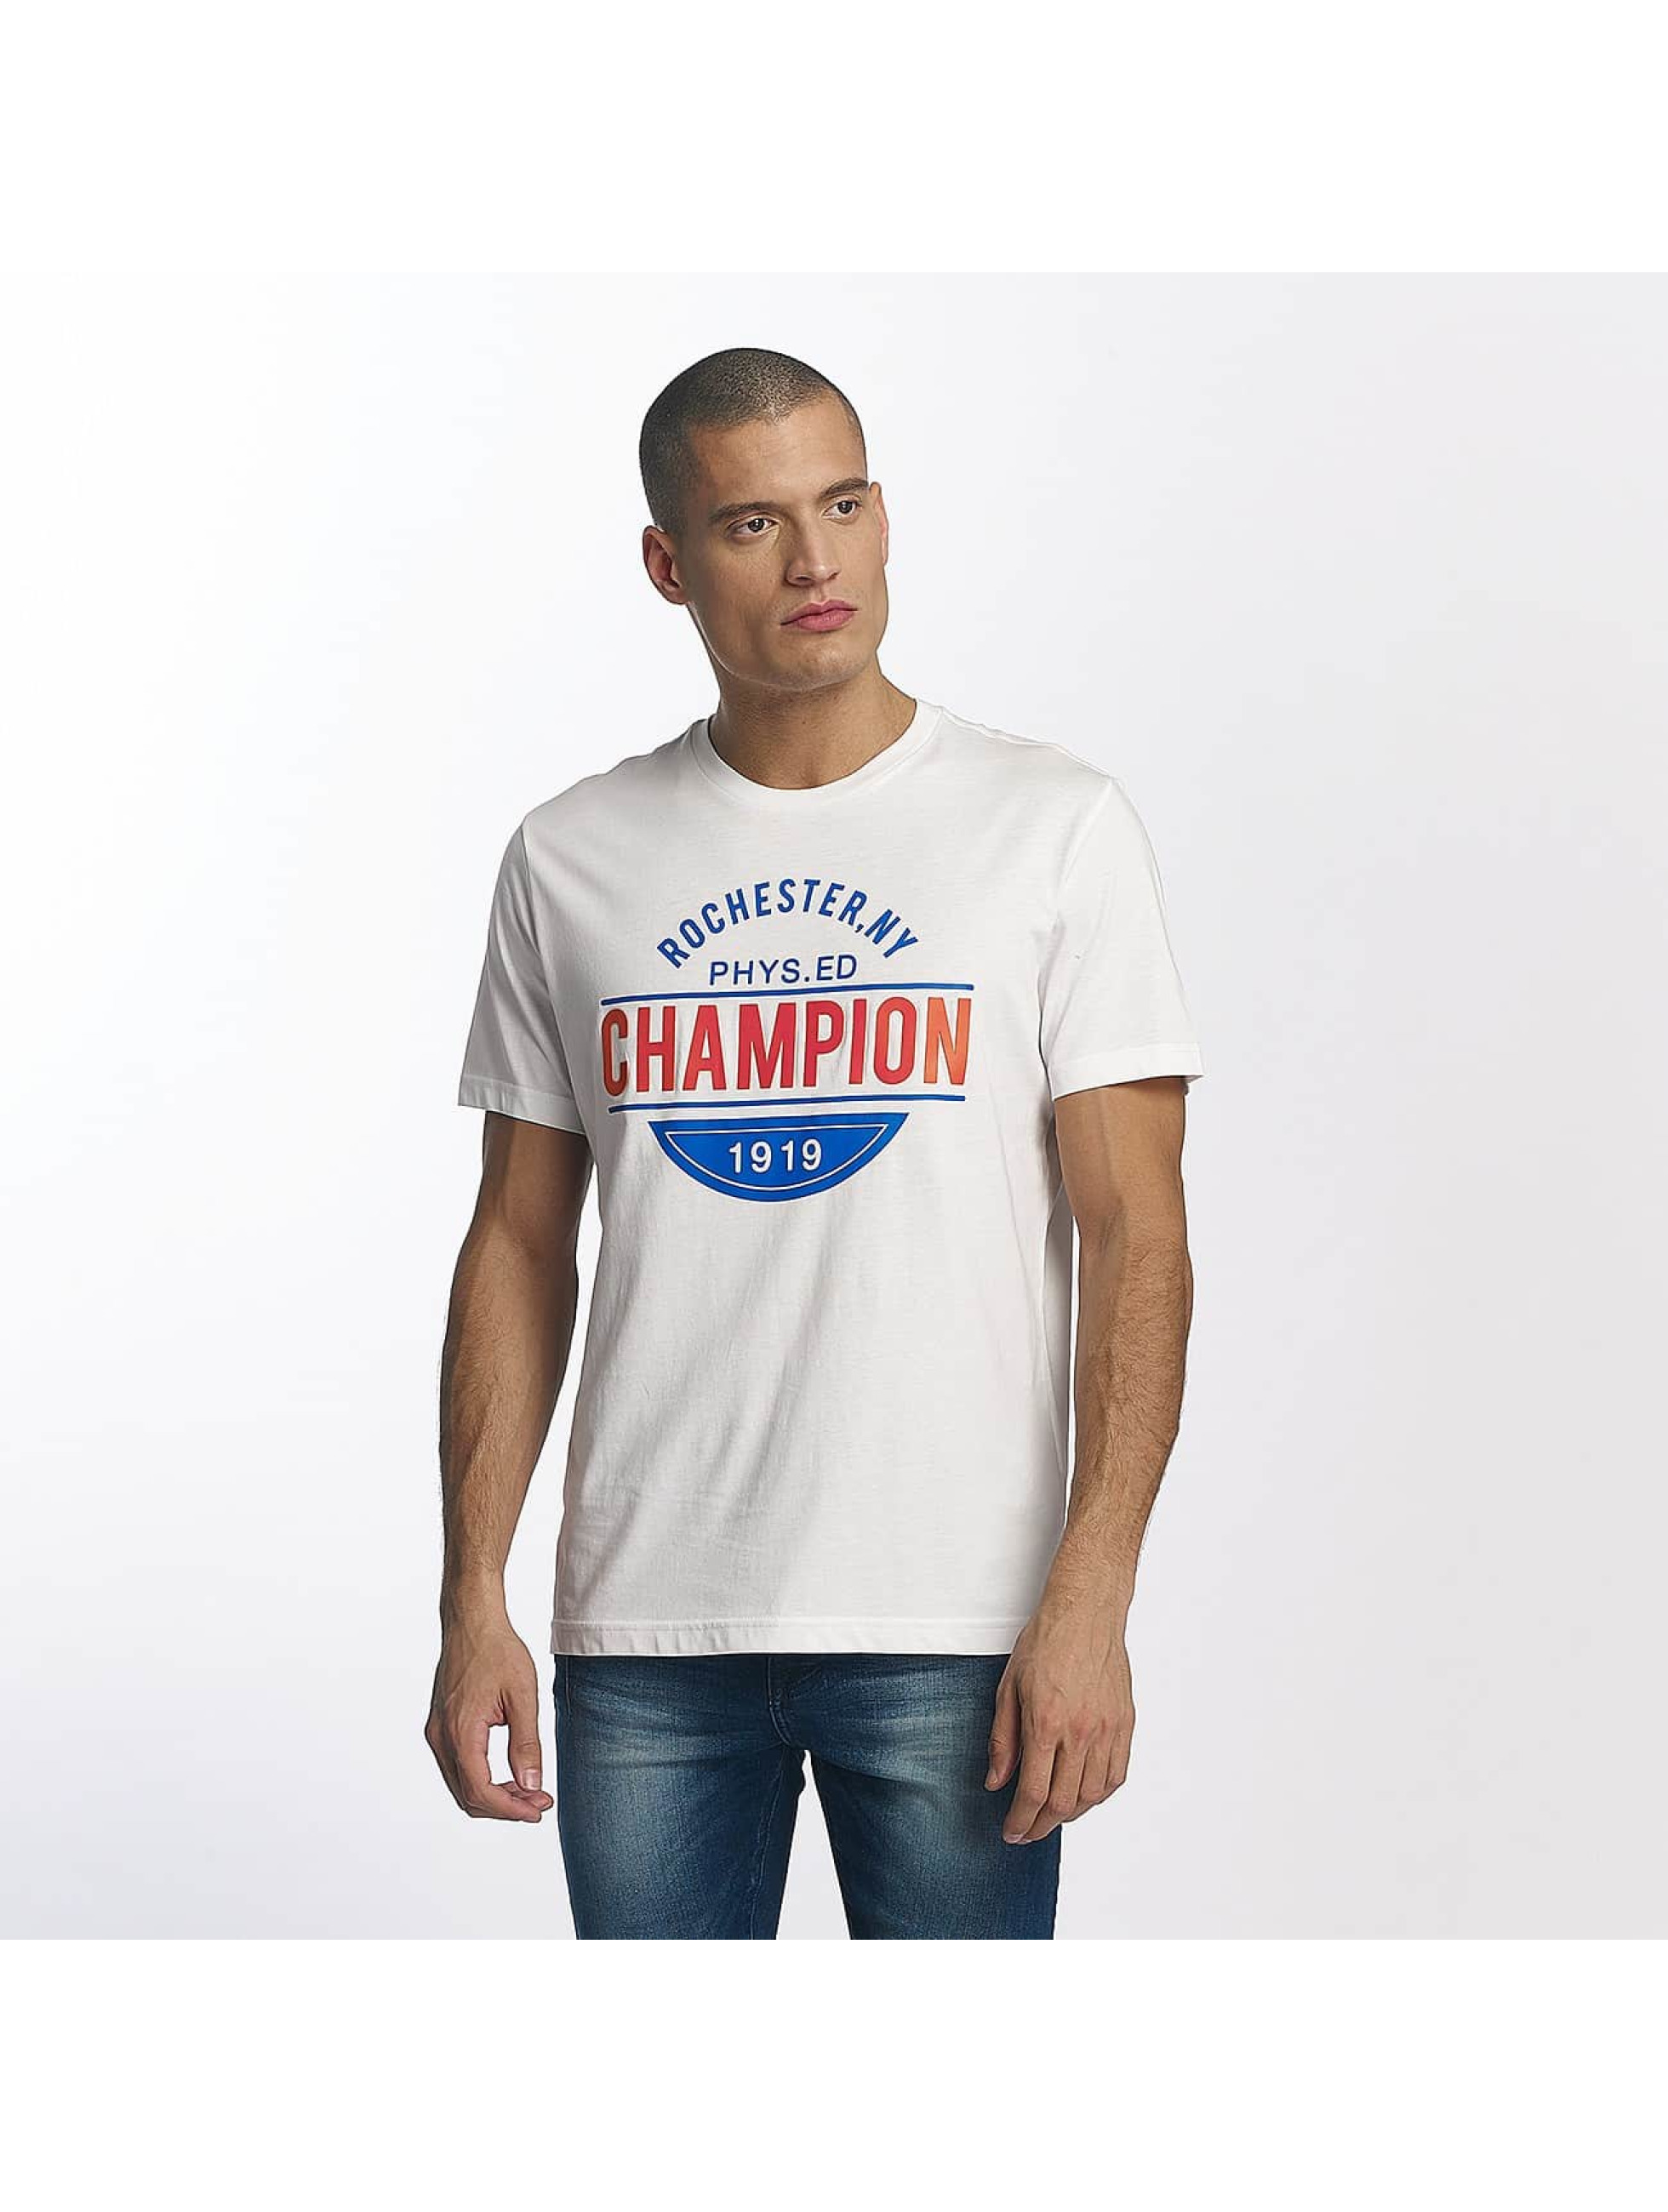 Champion Athletics Männer T-Shirt Rochester New York in weiß